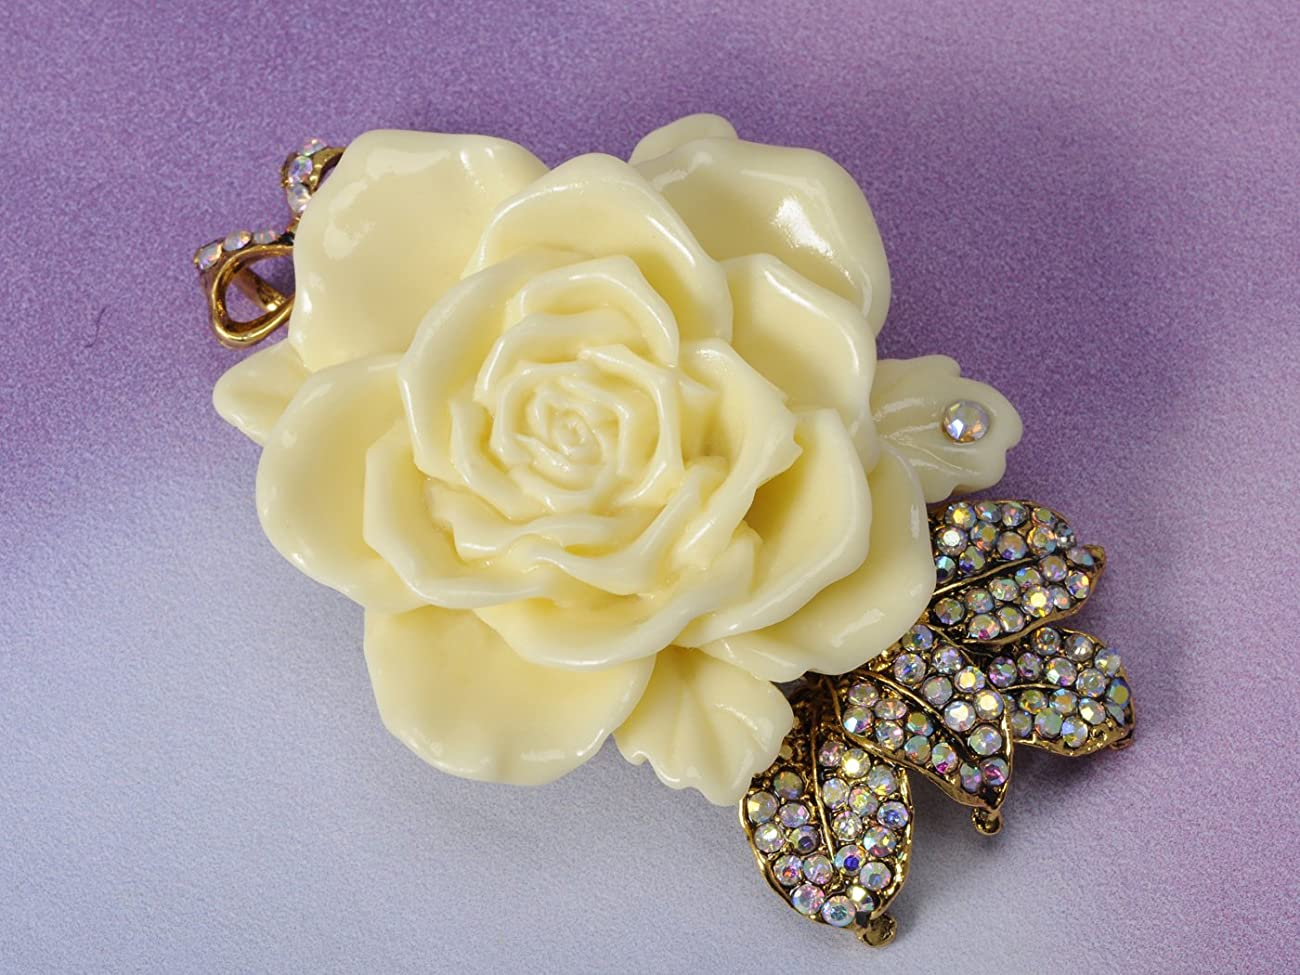 Vintage Inspired Tone Elegant Cream White Resin Enamel Rose Crystal Rhinestone Fashion Jewelry 1